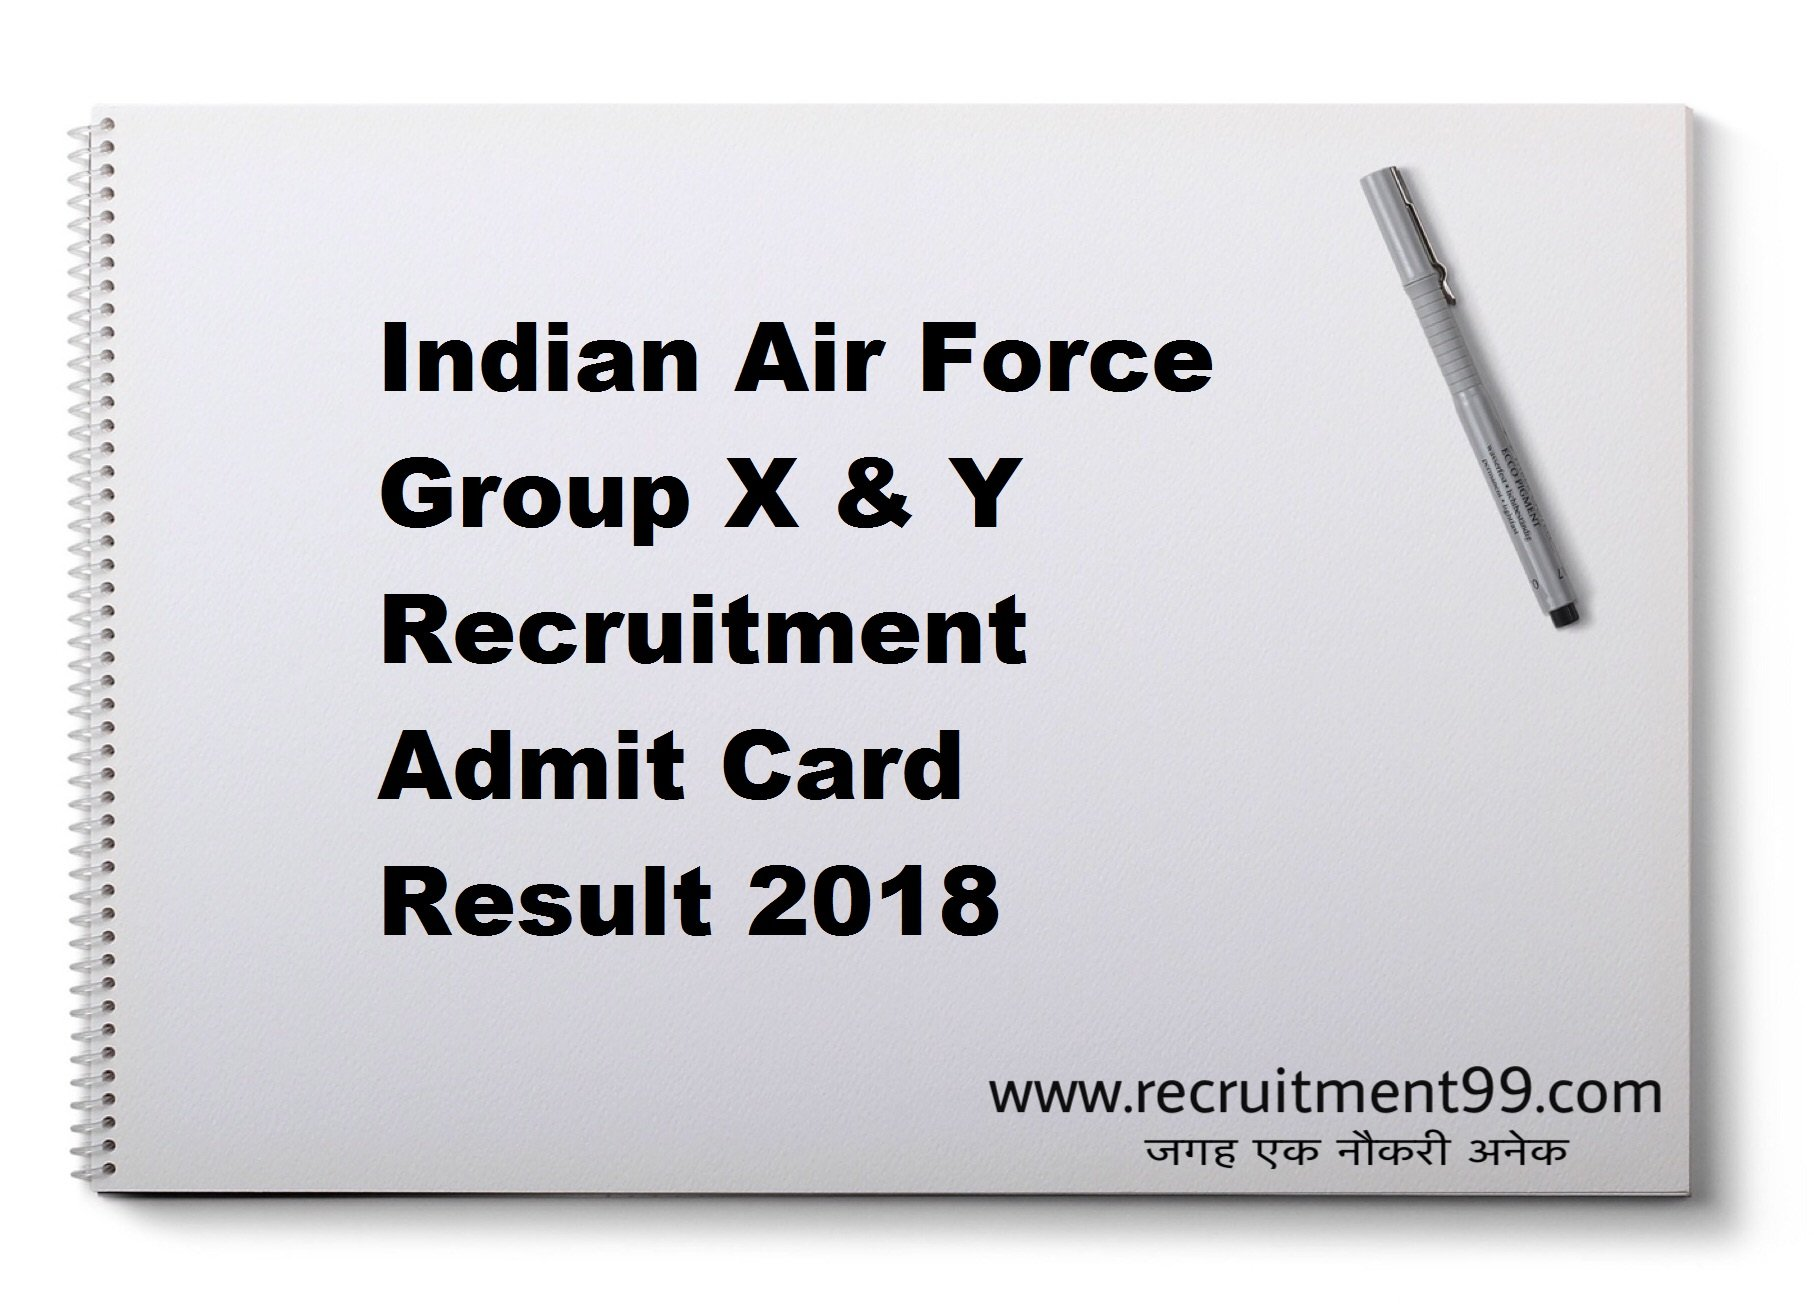 Indian Air Force Group X & Y Recruitment Admit Card Result 2018